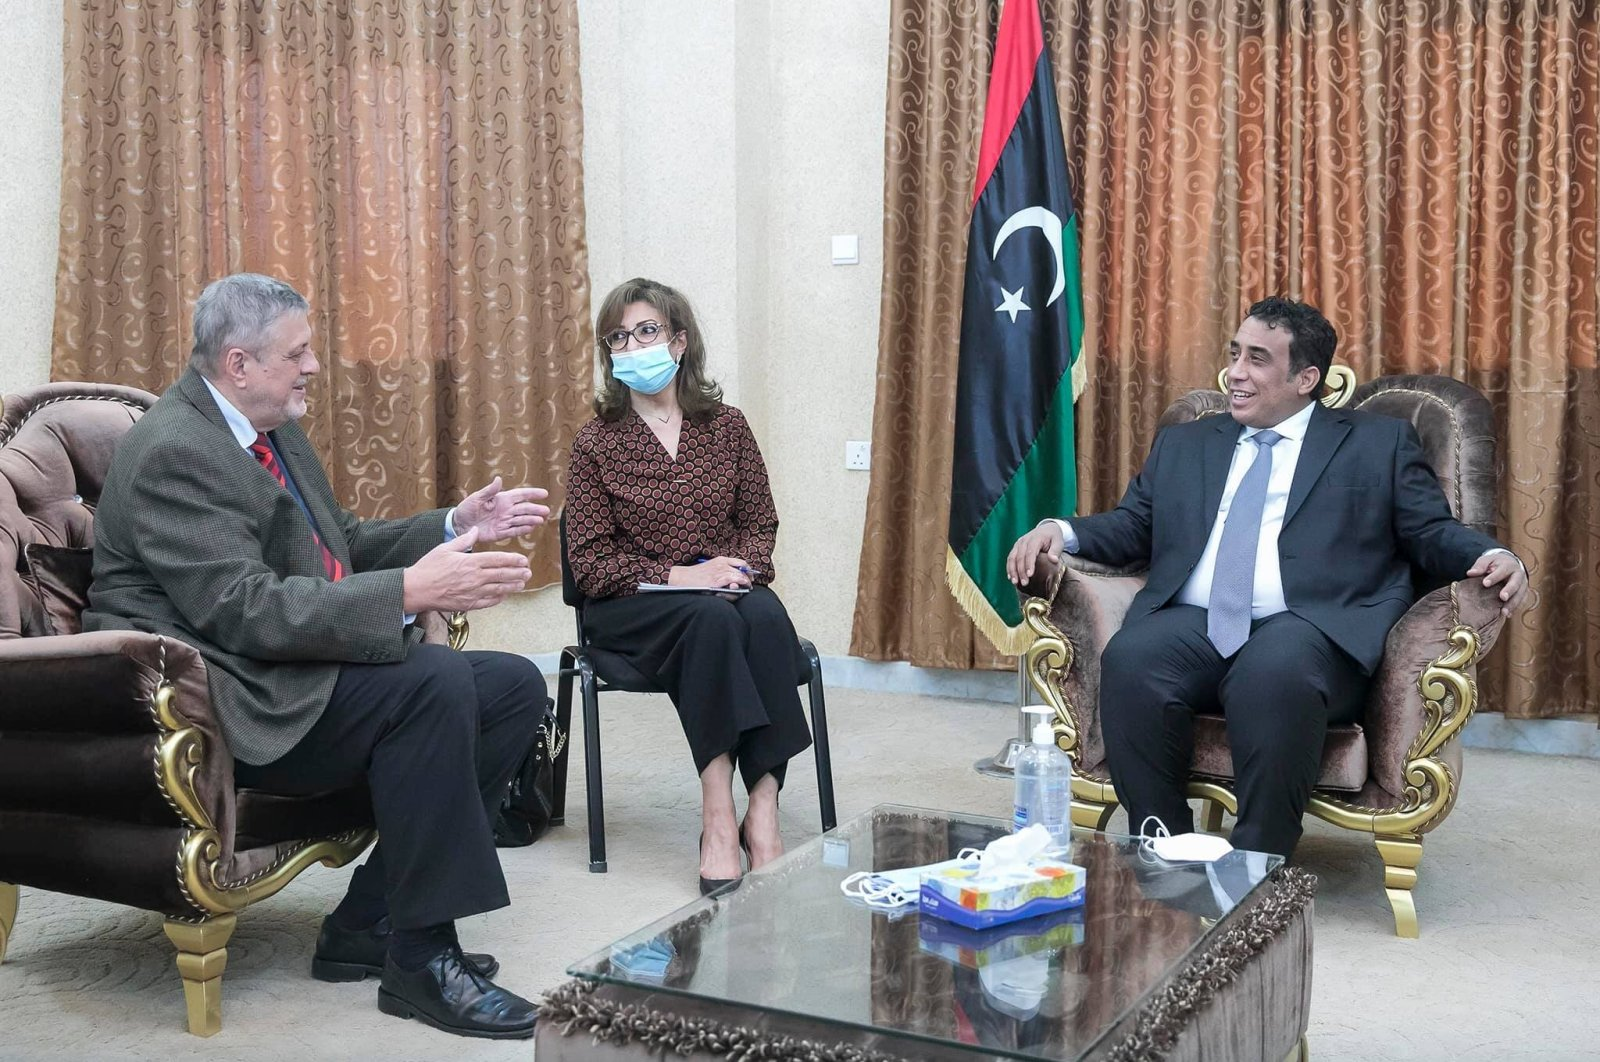 Jan Kubis, the United Nation's special envoy for Libya, (L) and Mohammad Younes Menfi, the head of Libya's Presidential Council, talk during a meeting in Tripoli, Libya, April 29, 2021. (AA Photo)